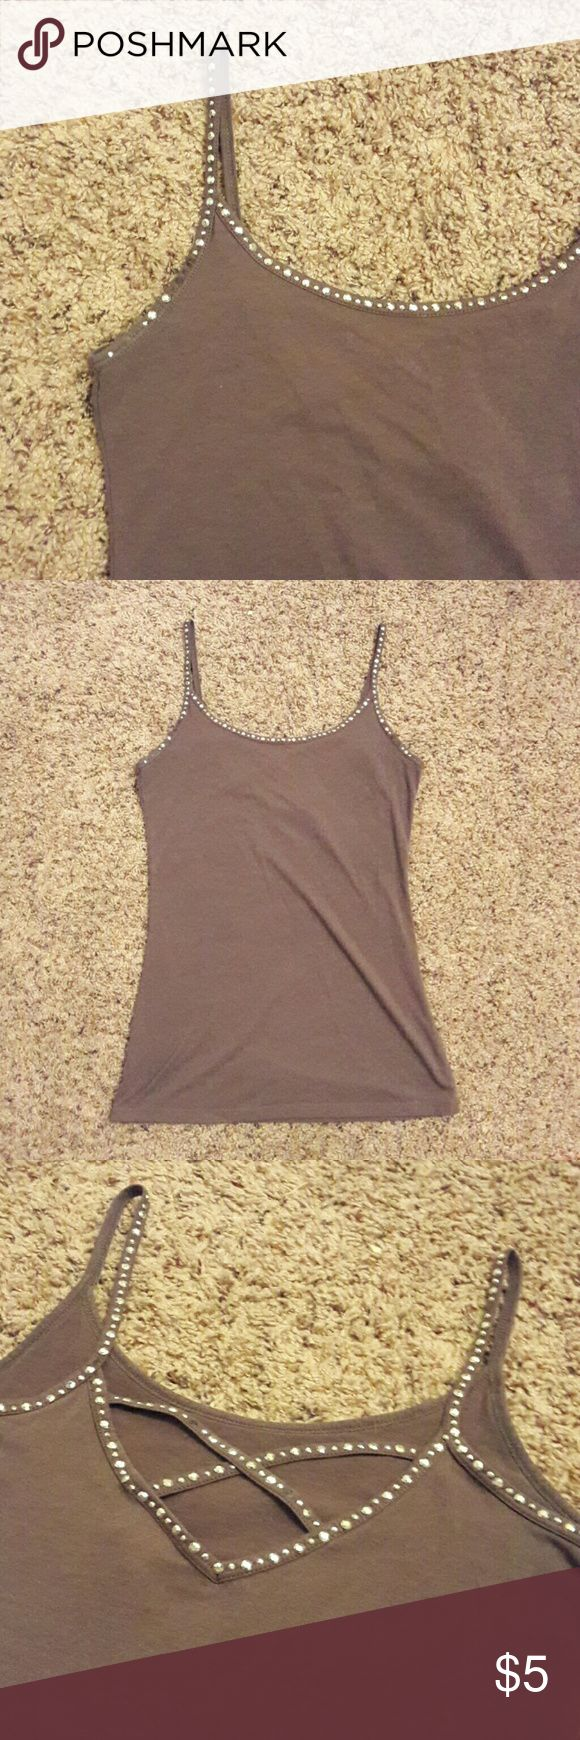 Rue 21 Spaghetti Strap Tang Top A two-sided tang top. Either design can be worn in the front. A few embellishments are missing which can be seen in the photos. I honestly just noticed them as I was taking photos. No pulling and very comfy.great as an undershirt or by itself. Grey with maybe an olive undertone. Rue 21 Tops Camisoles